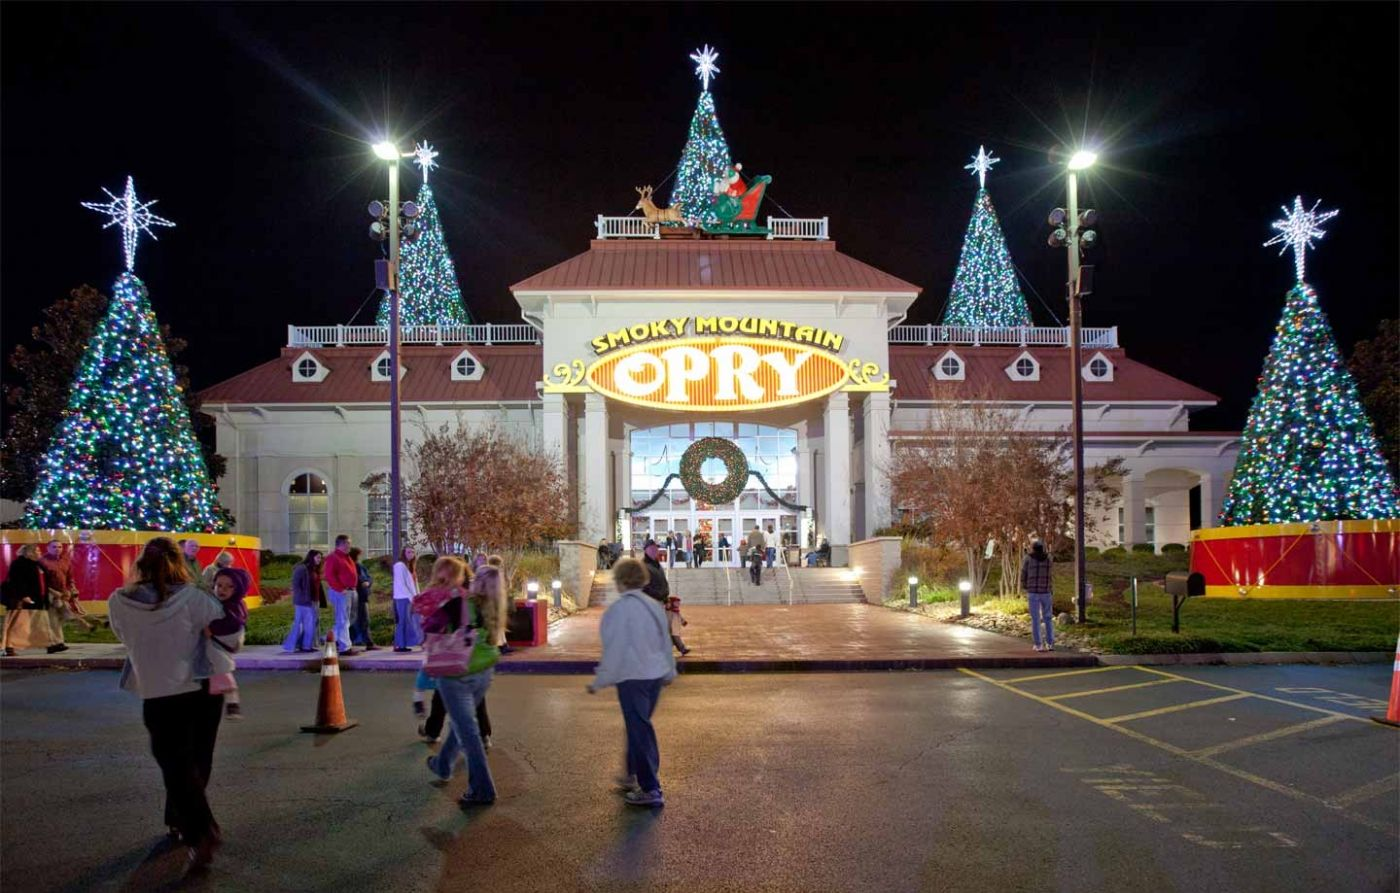 Christmas at the Smoky Mountain Opry in Pigeon Forge TN | Pigeon ...